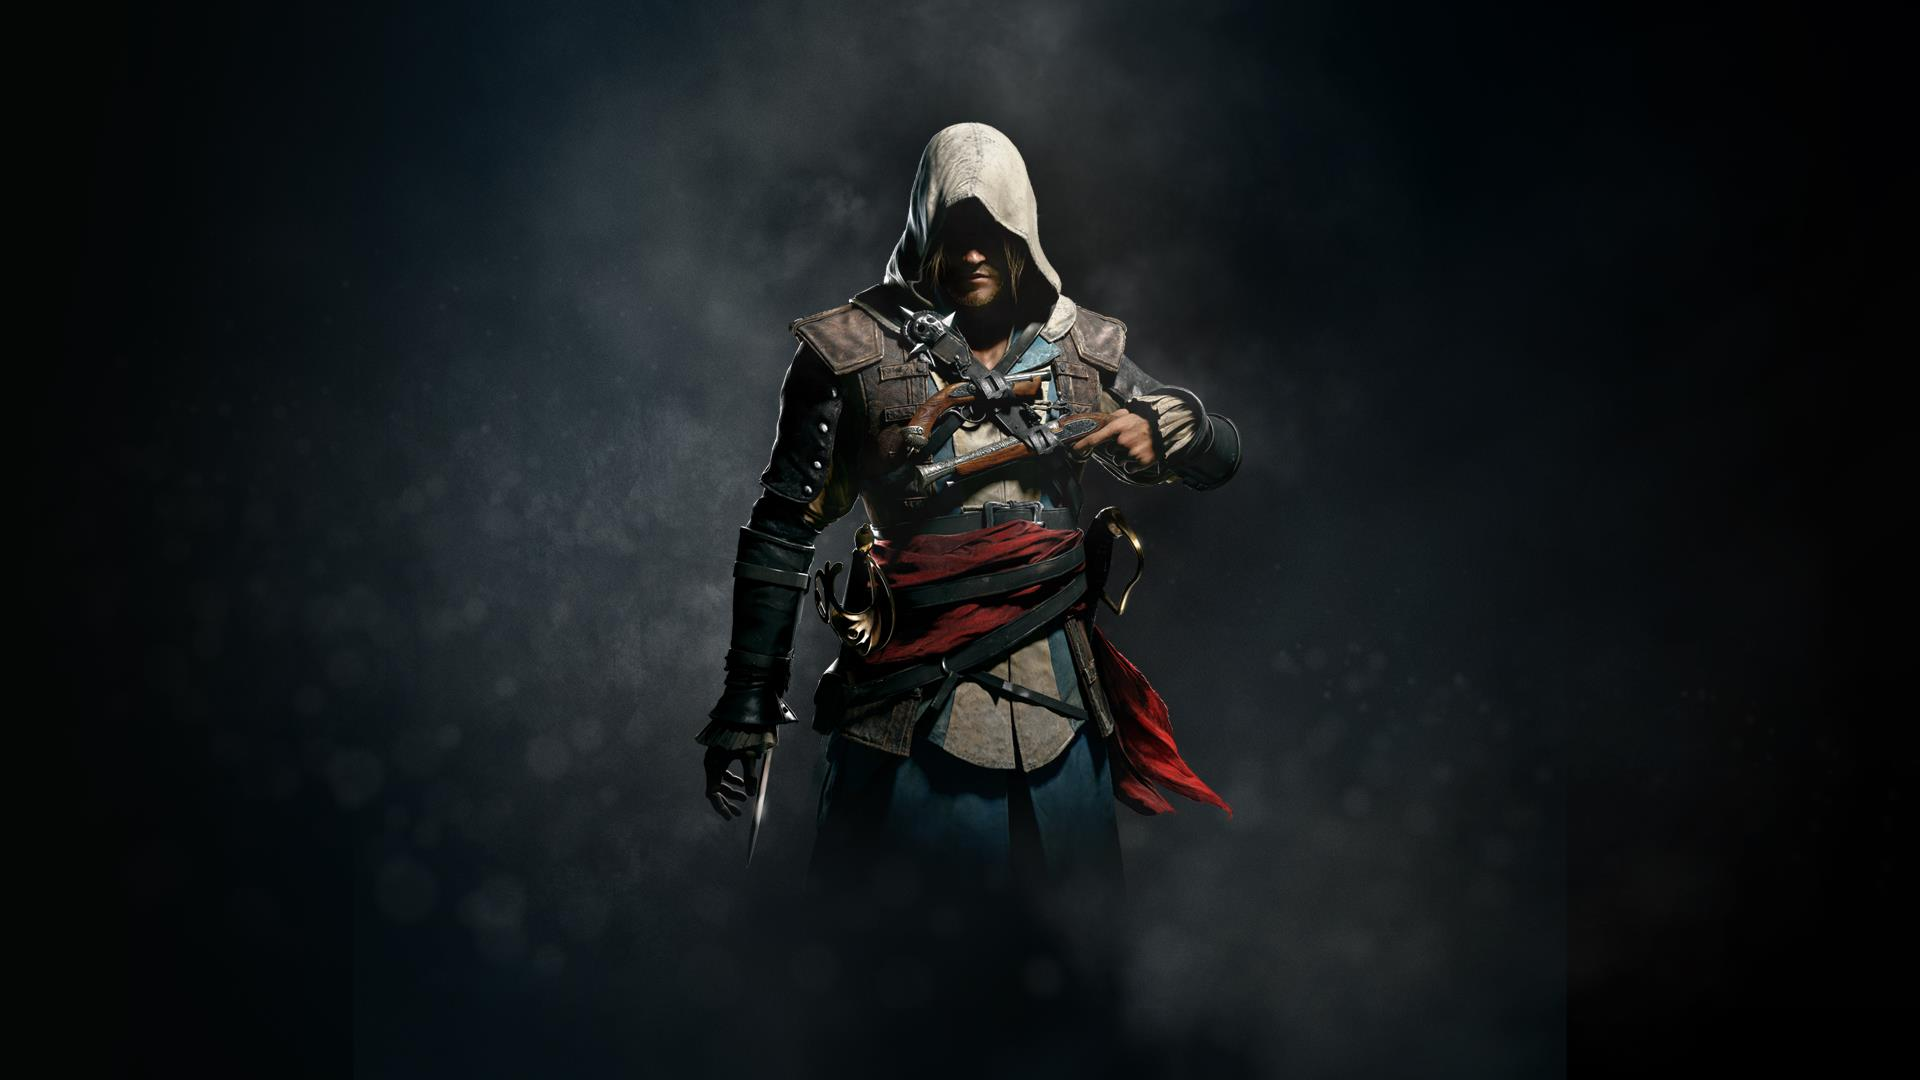 Destroyer in Assassin's Creed IV: Black Flag